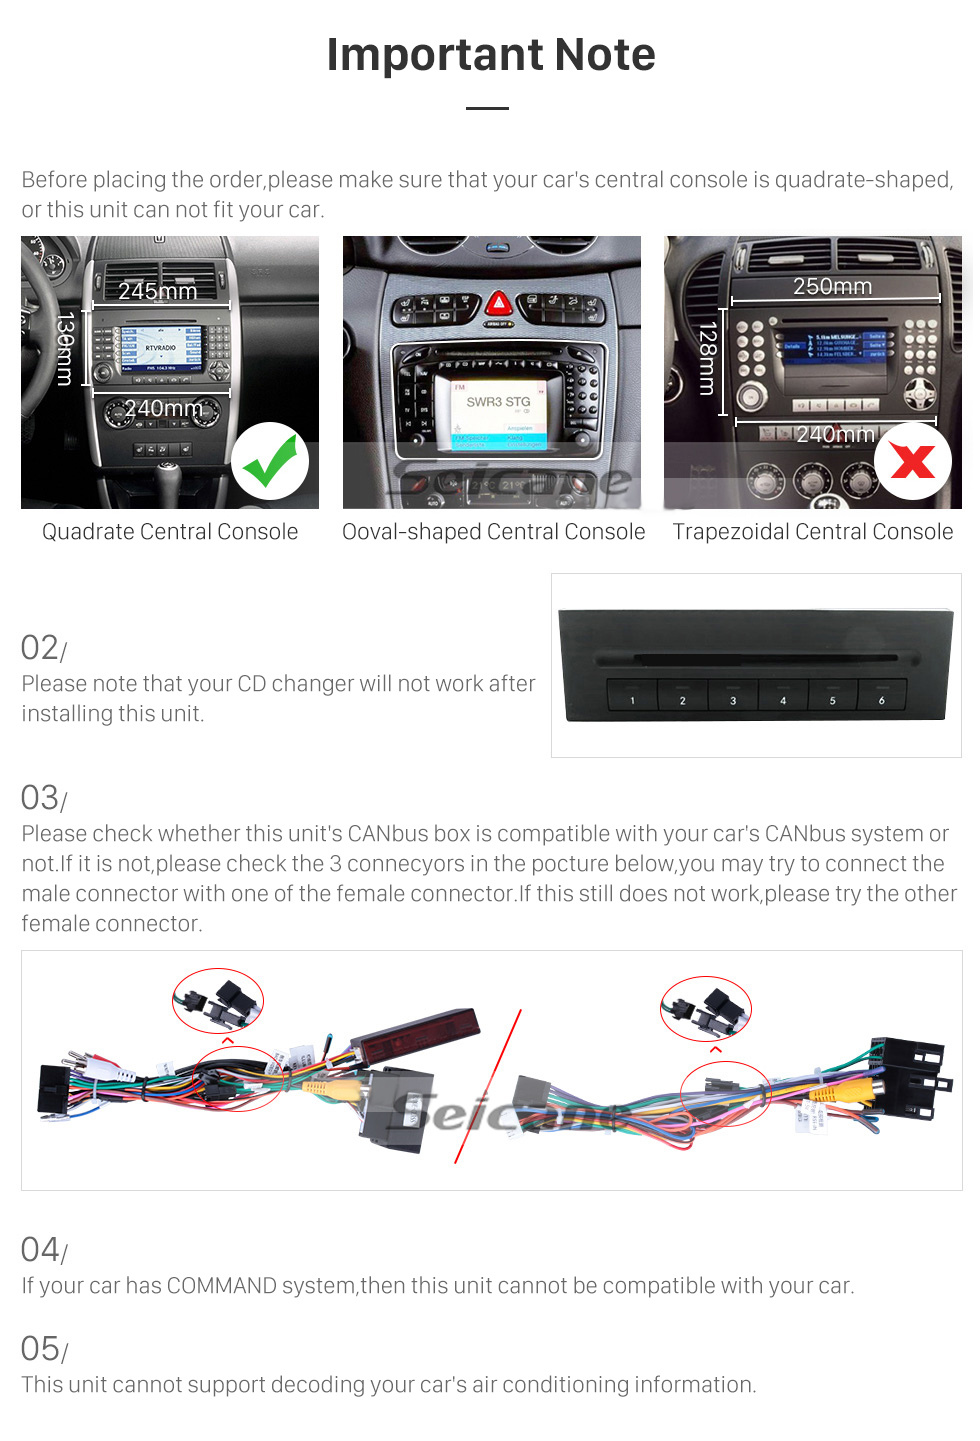 Seicane 9 inch Android 10.0 GPS Navigation Radio for VW Volkswagen Crafter Mercedes Benz Viano / Vito /B Class B55 /Sprinter /A Class A160 with Bluetooth WiFi Touchscreen support Carplay DVR